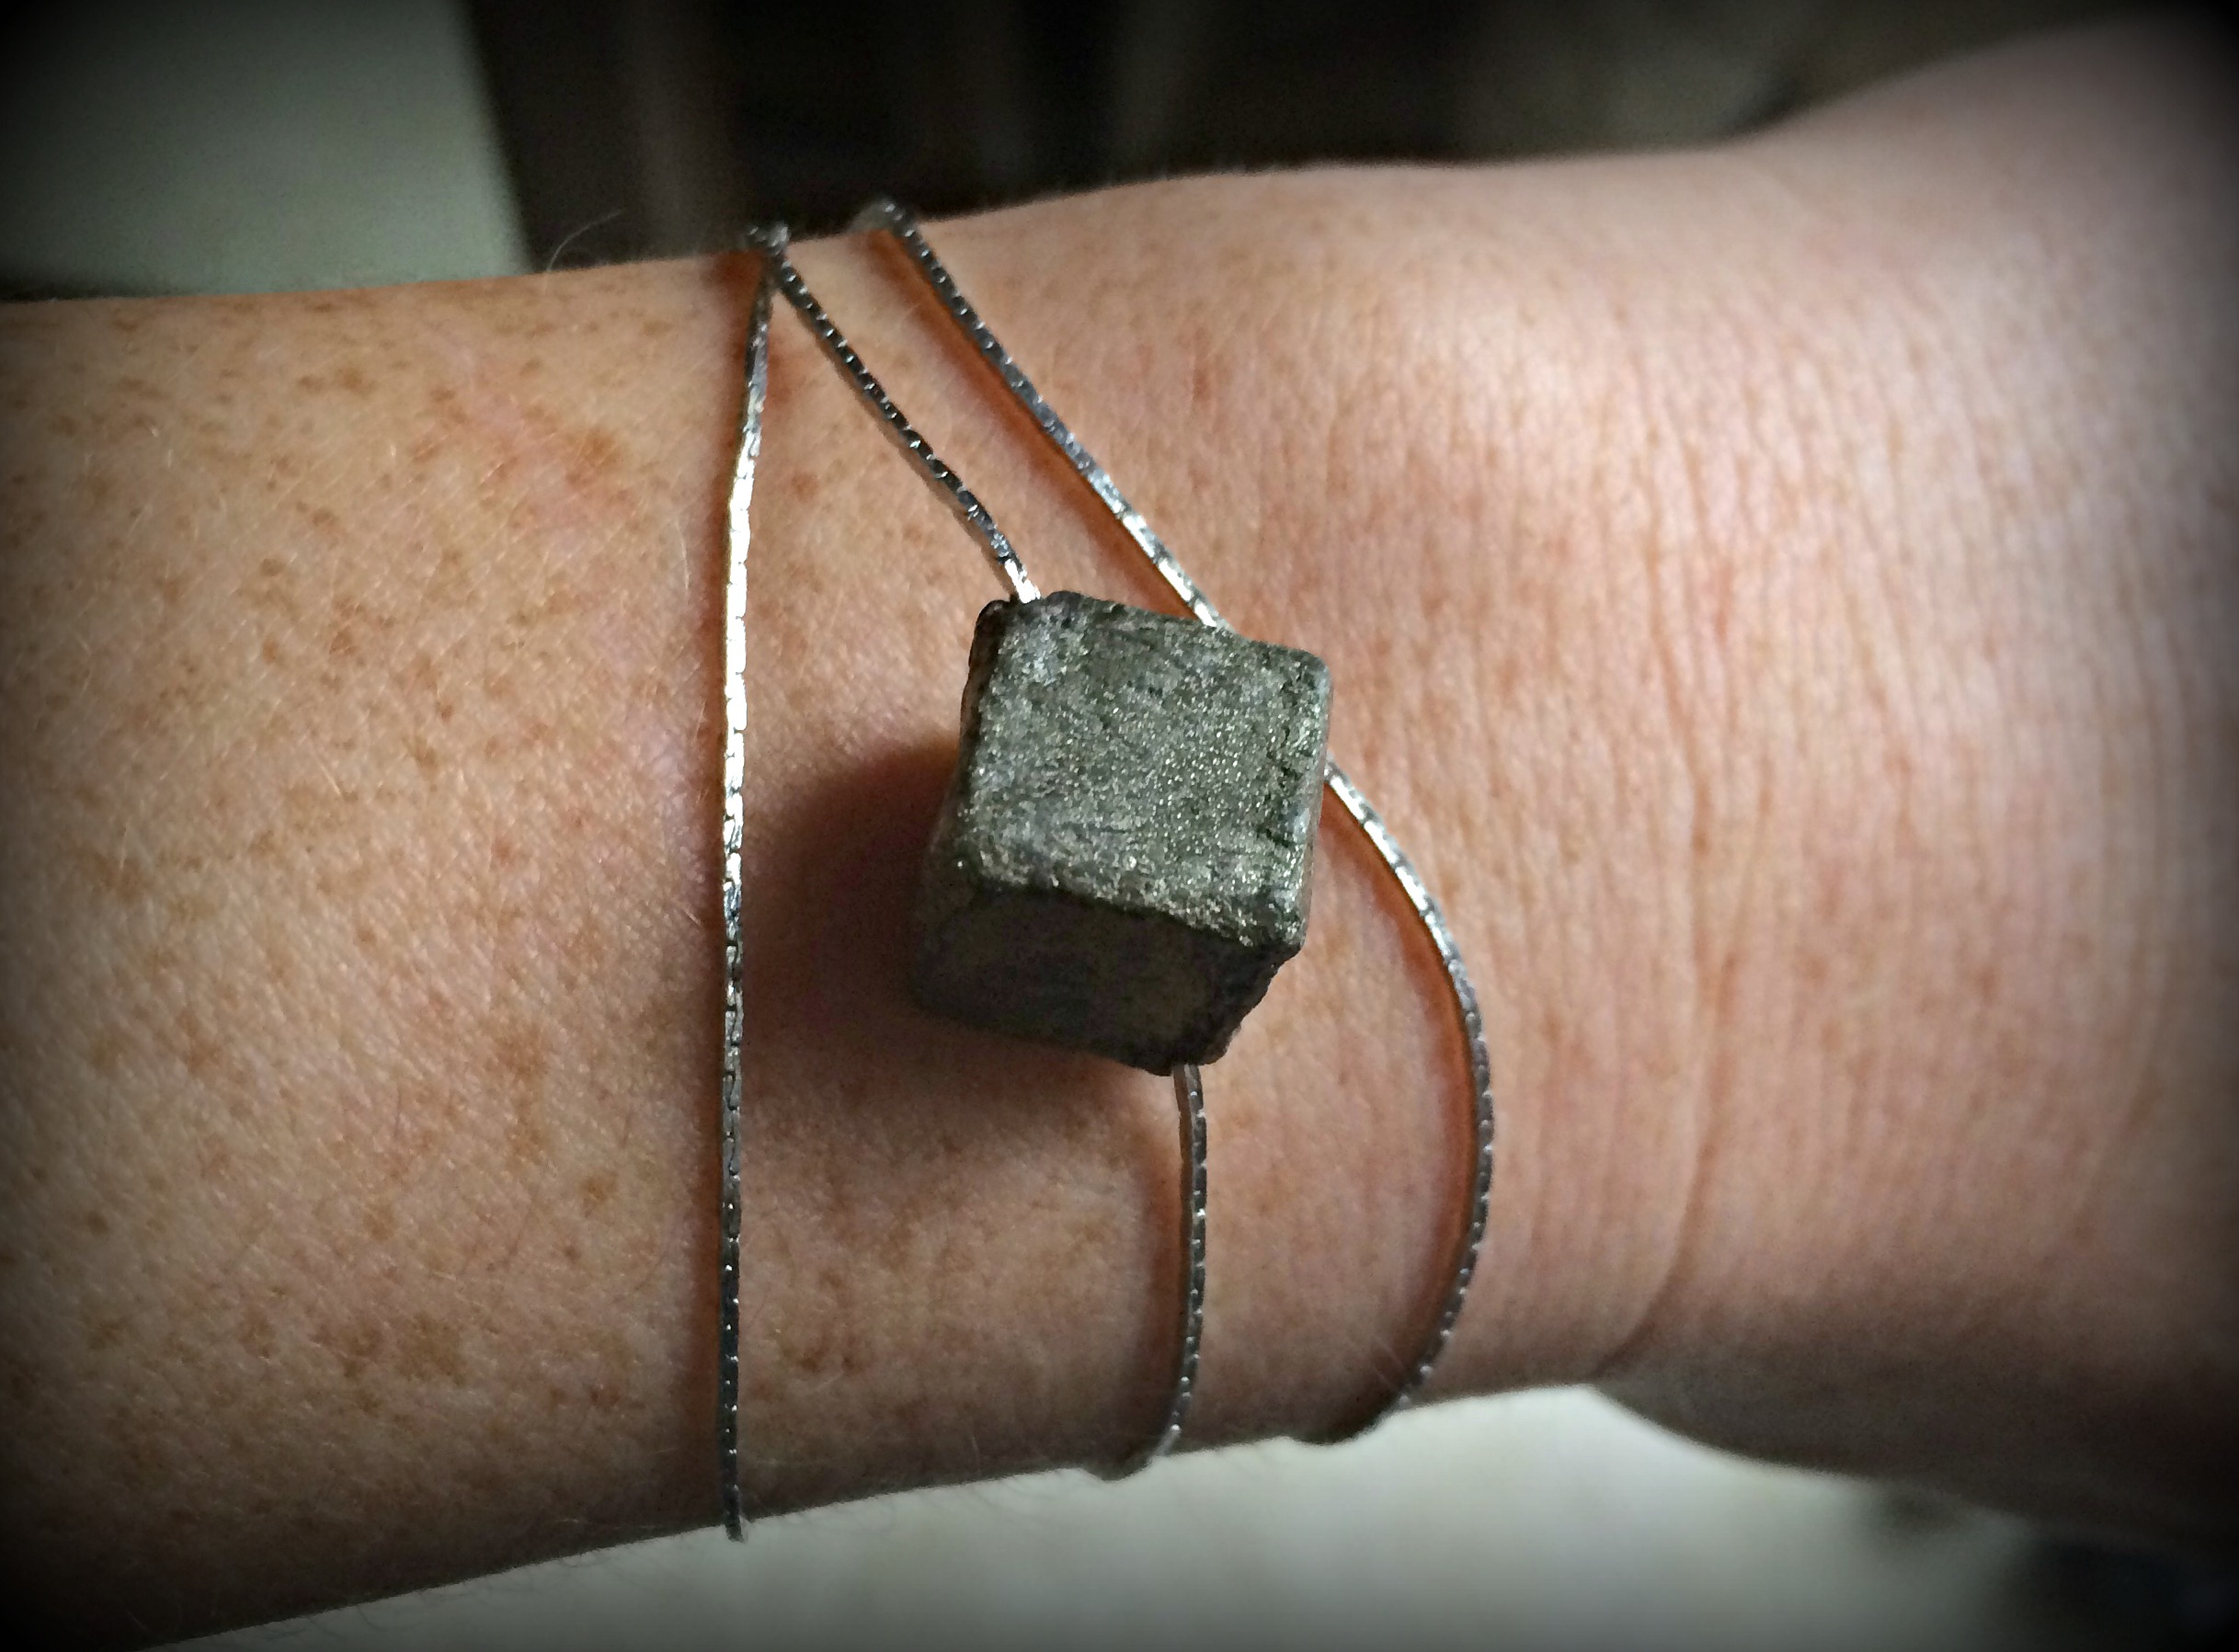 """I am SO loving this jewelry line right now. I seem to find some of my favorite and most unique jewelry designers on Instagram and this is another one! Linda Objet makes delicate, beautiful, and super affordable pieces.  I paired this   """"Pyrite Bracelet""""   with a pair of grey jeans, graphic tee, and a pair of wedges. This particular piece is so great because you can dress it up or dress it down!  Use  Coupon Code    """"ksstyle""""   for  20% off  your order!  https://www.etsy.com/shop/lindaobjet"""